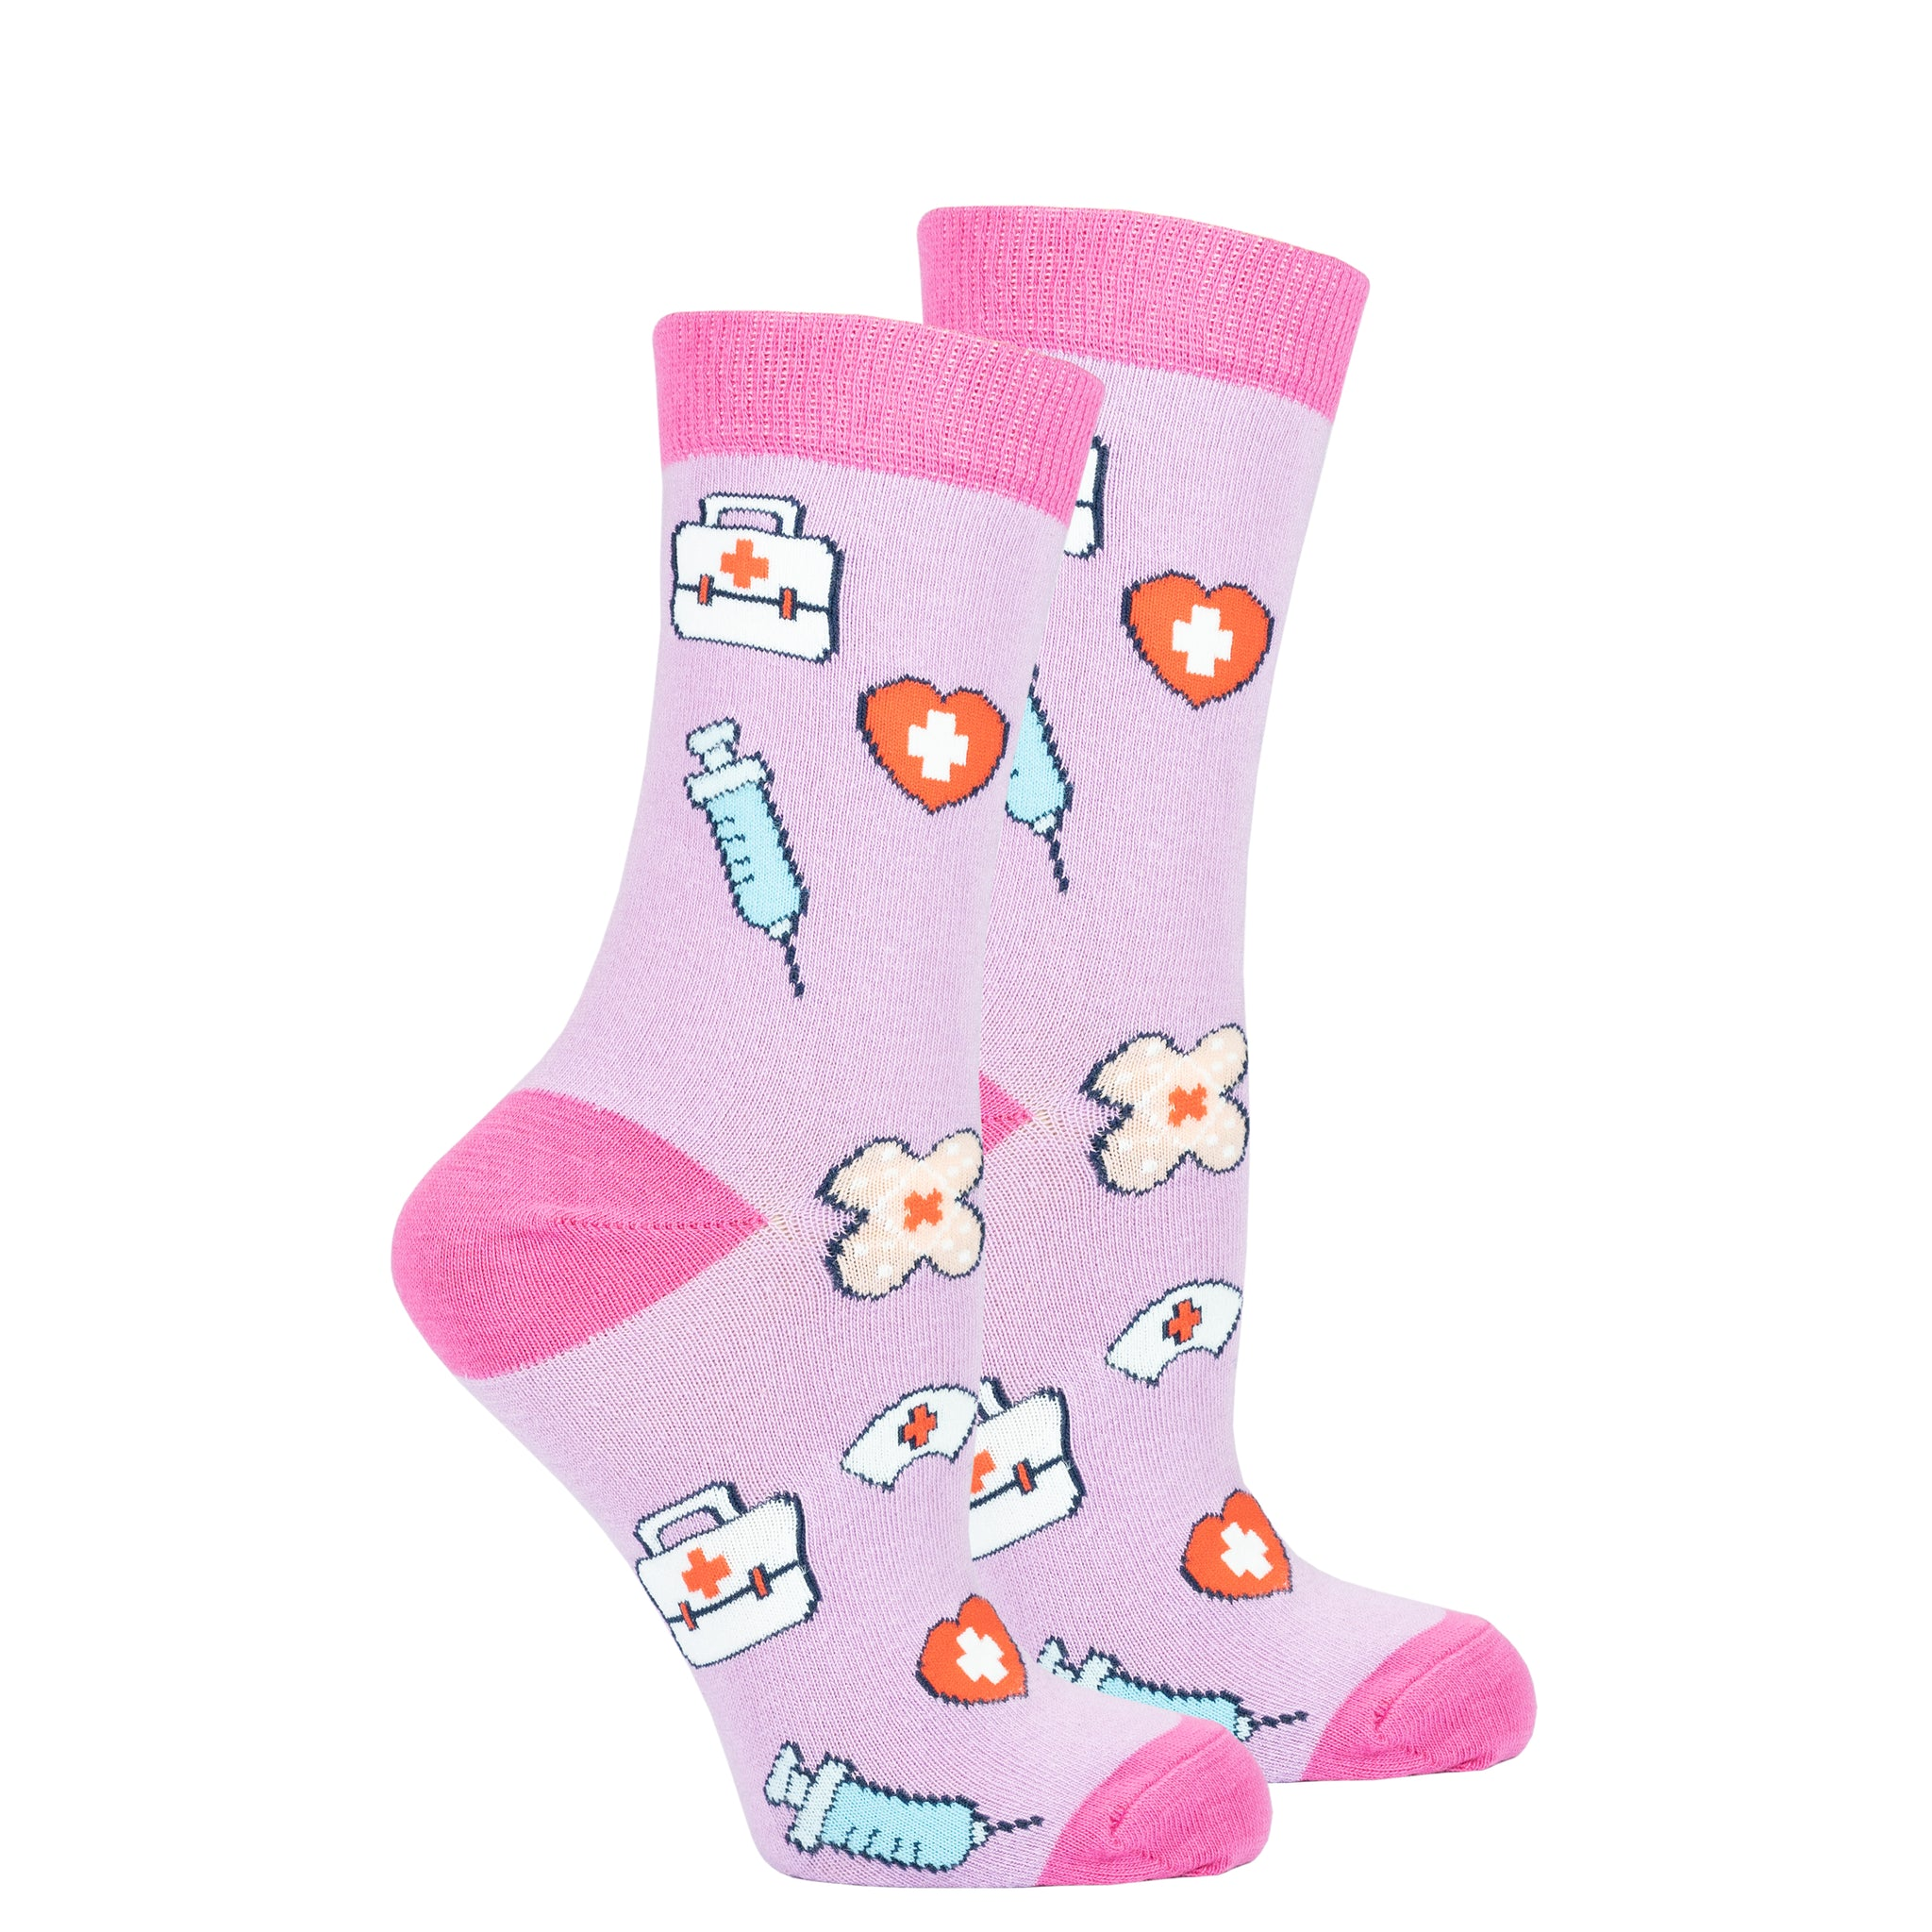 Women's Nurse Socks